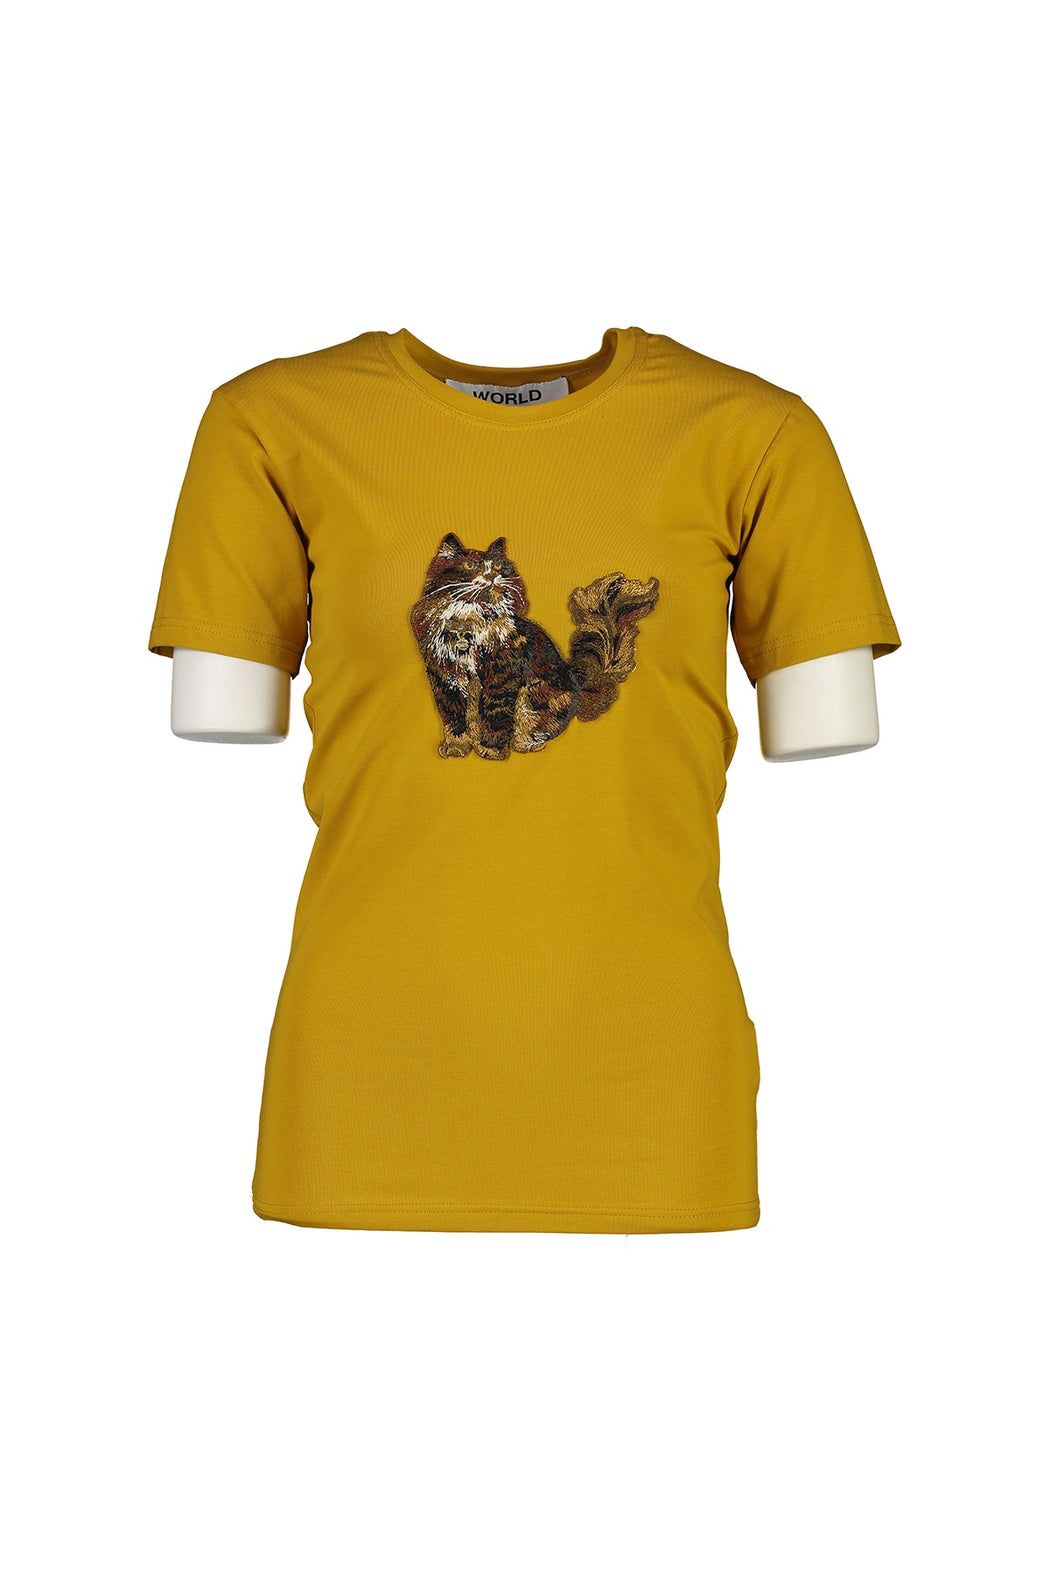 WORLD 4501 Two Wrongs T (Unisex) Mustard